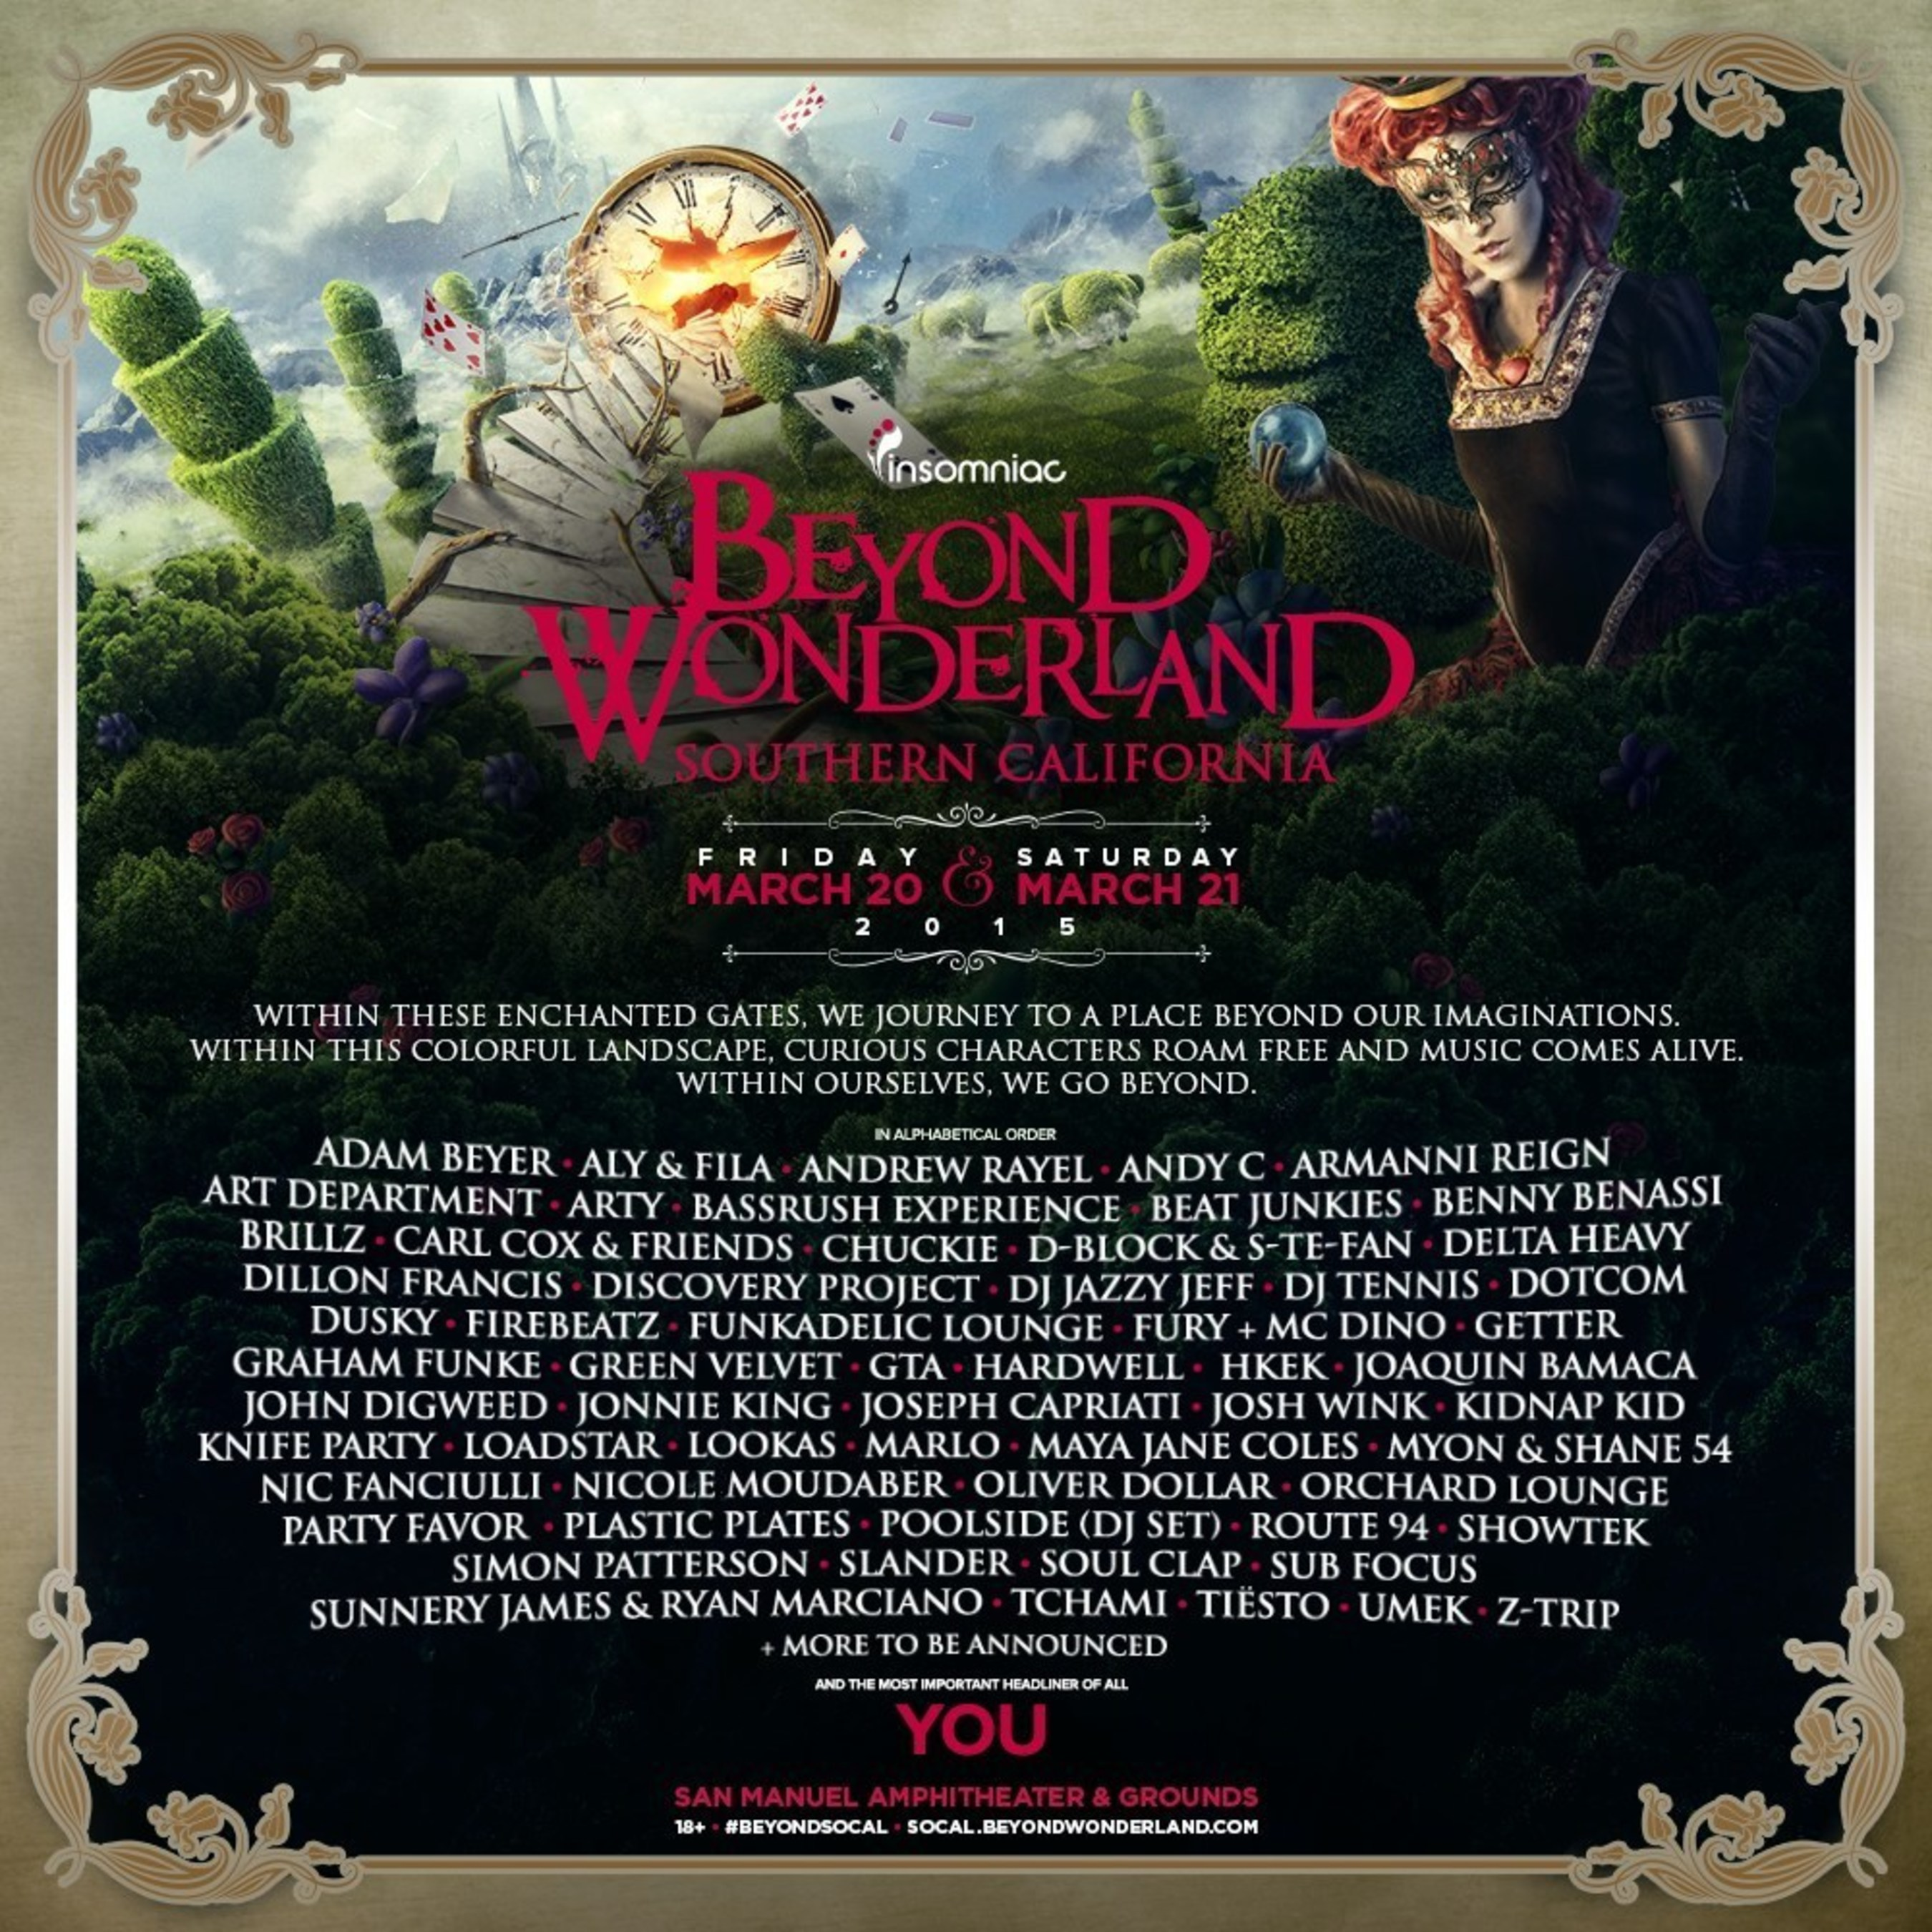 Insomniac Unveils Lineup for 2015 Beyond Wonderland, Southern California Taking Place March 20-21 at San Manuel Amphitheater & Grounds